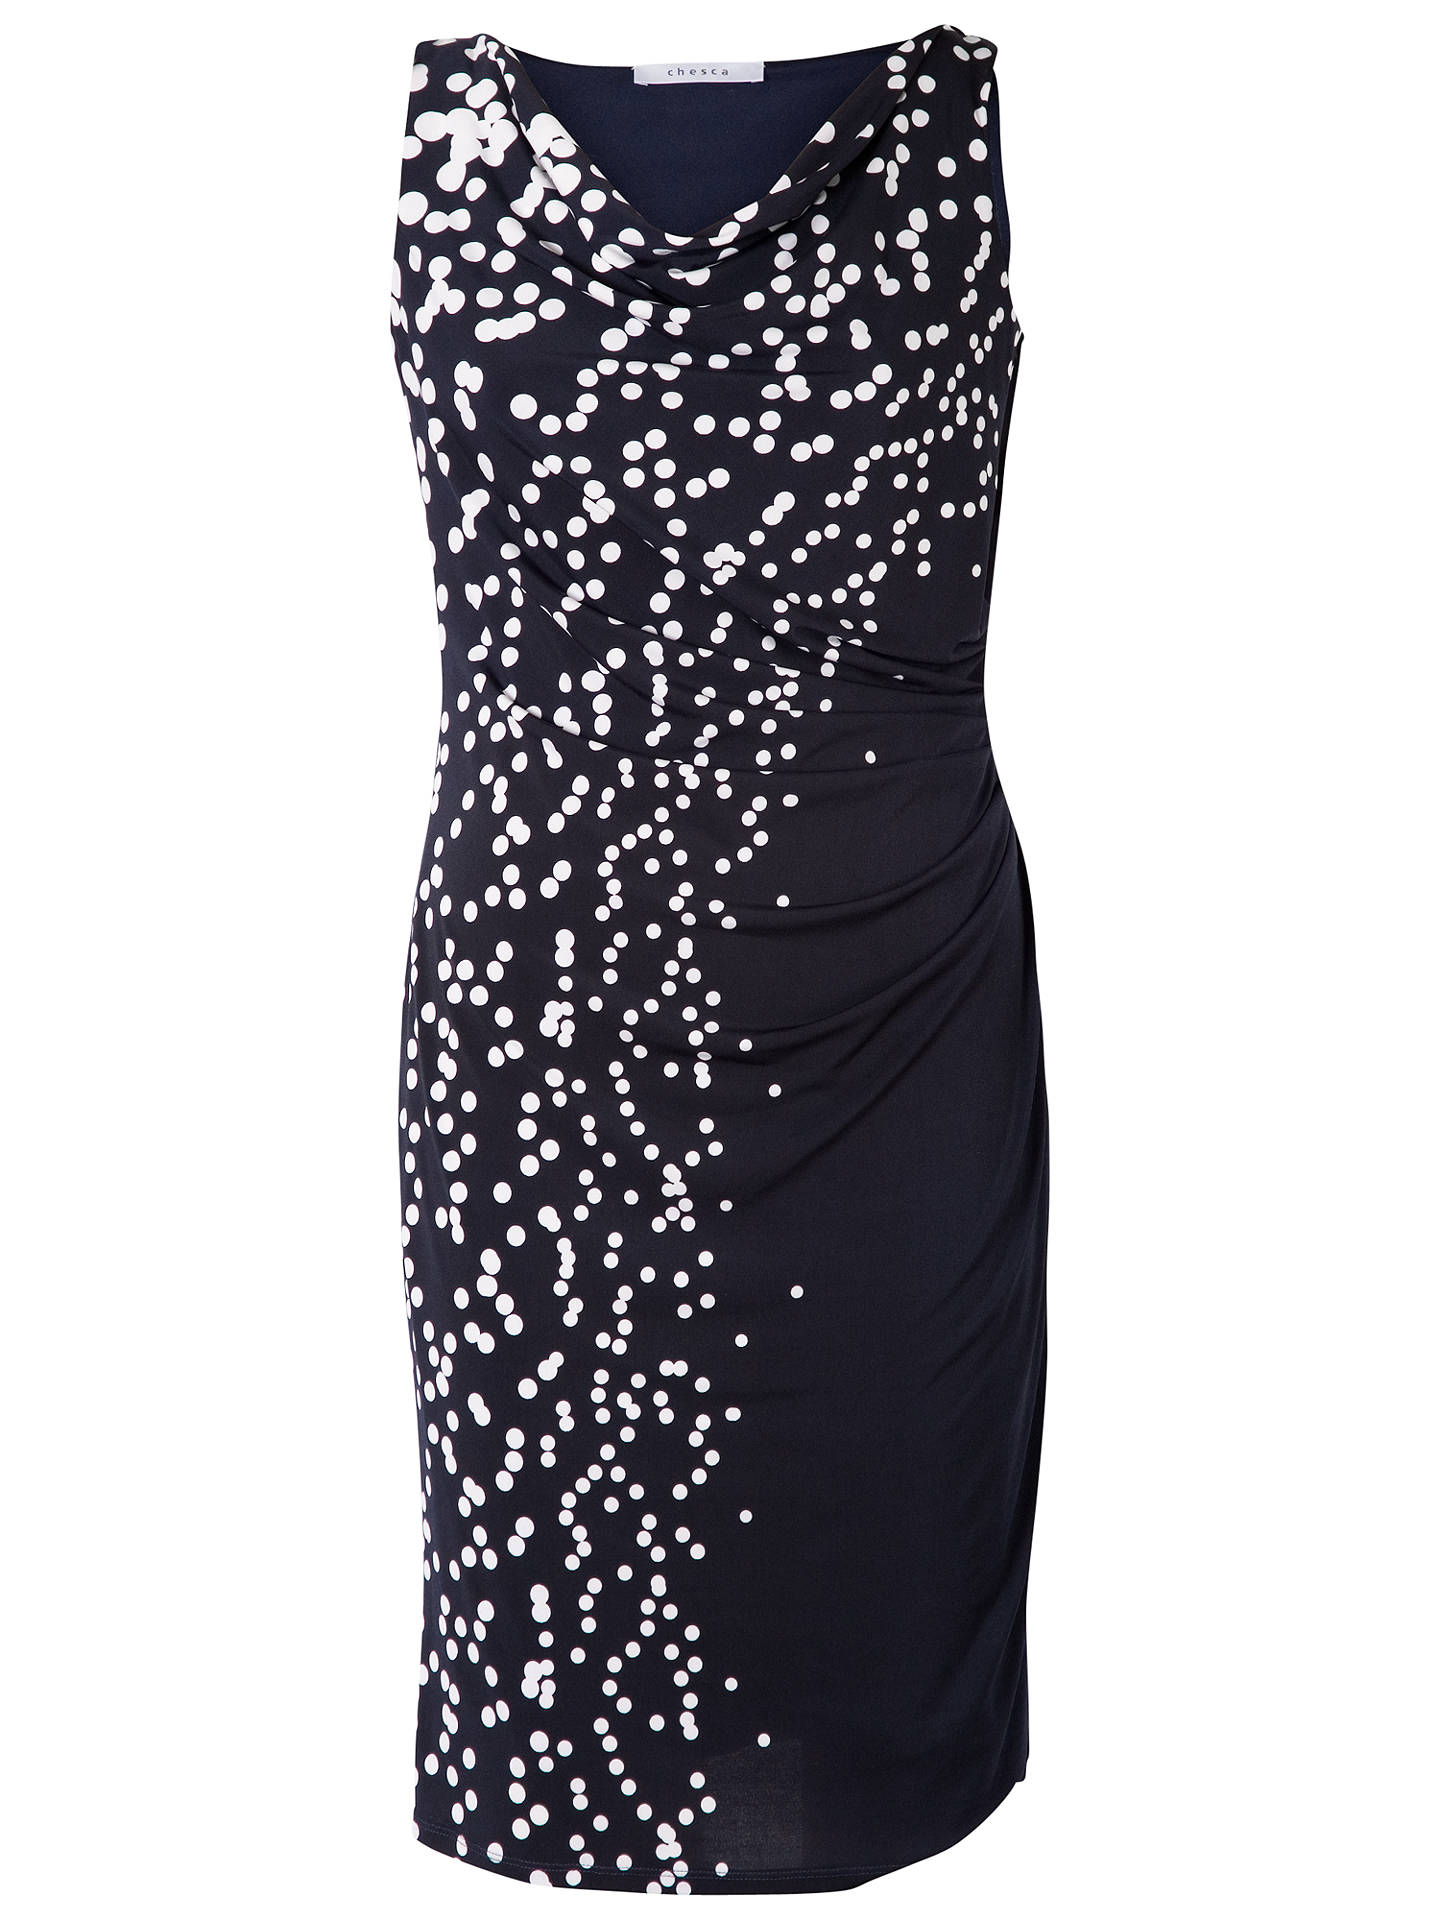 Buy Chesca Spot Dress, Navy/White, 14 Online at johnlewis.com